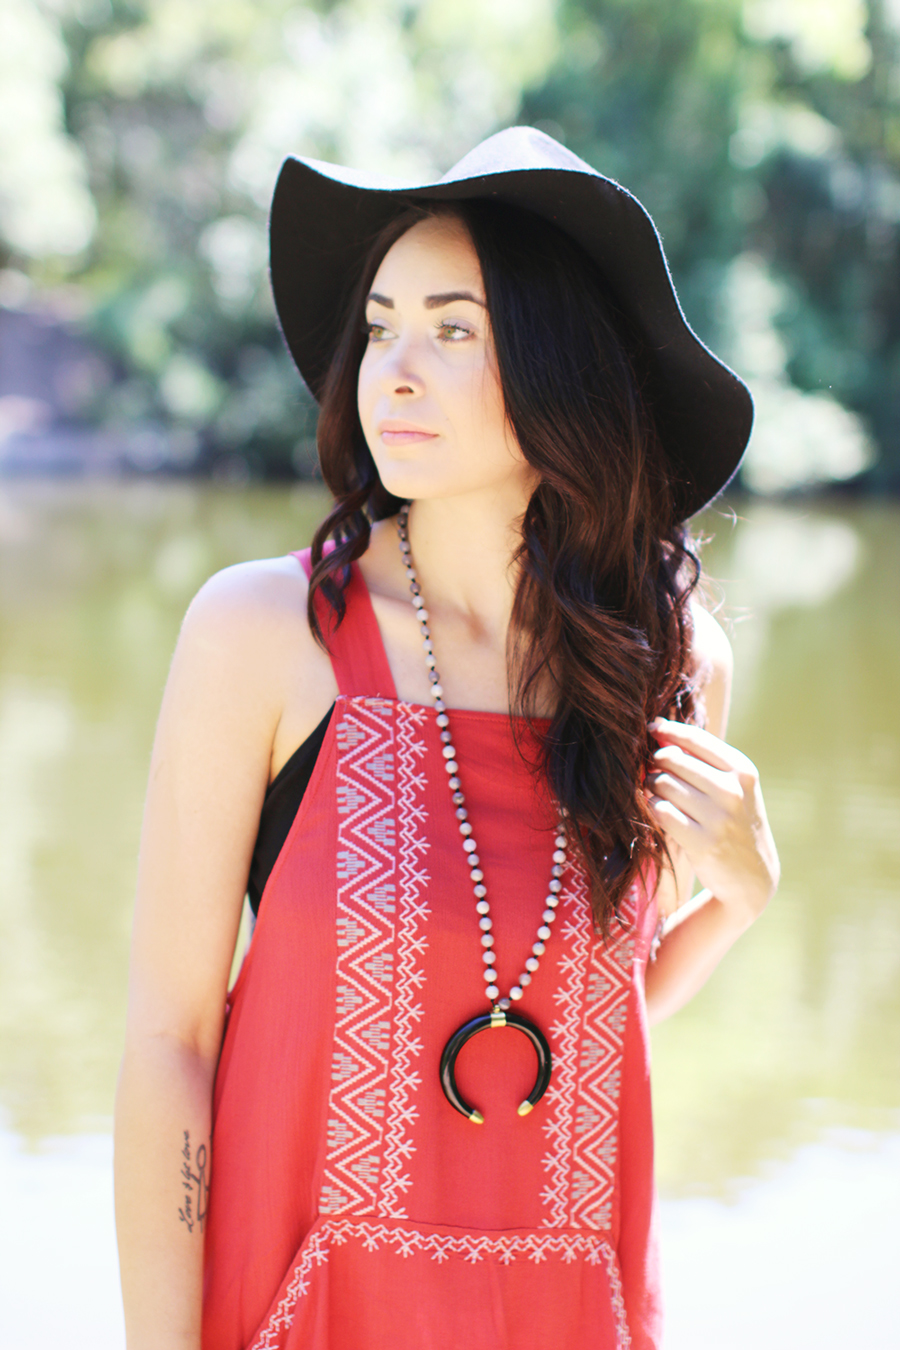 FTT-RED-PINK-SILVER-DRESS-HAT-WATER-FASHION-SHOOT